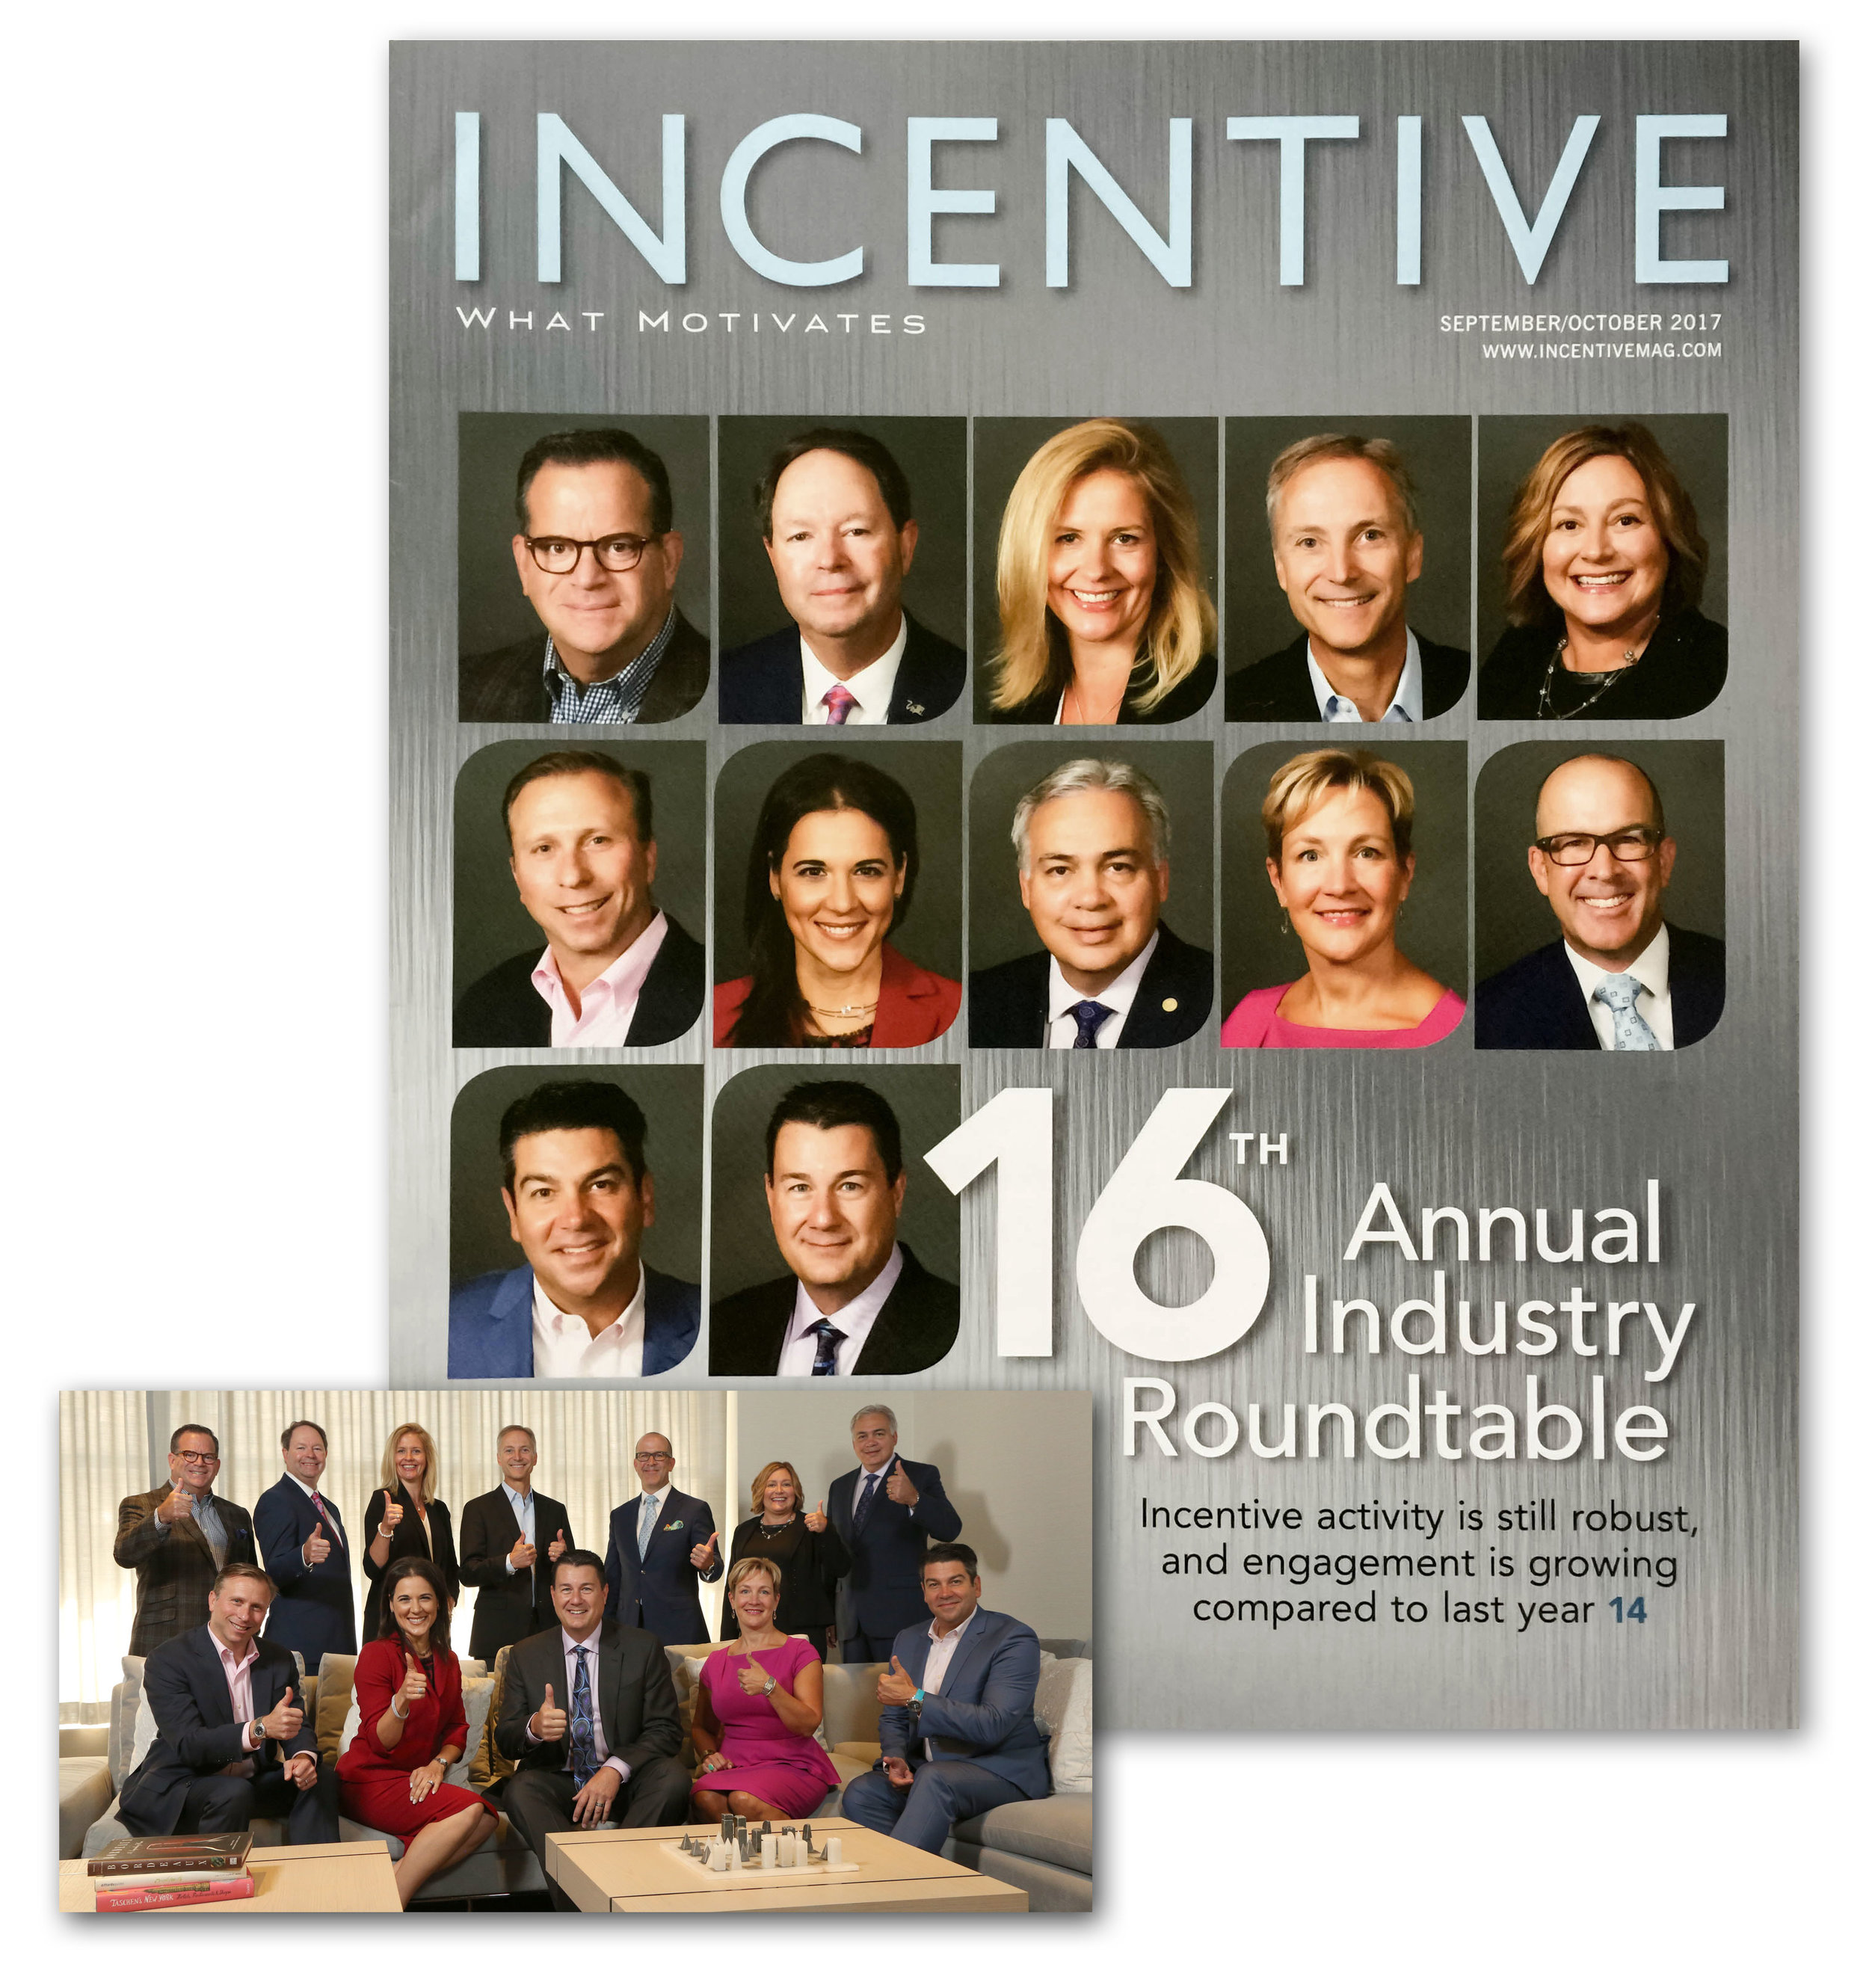 INCENTIVE MAGAZINE INVITES RICH KILLIAN TO THE 16TH ANNUAL INDUSTRY ROUNDTABLE -  Incentive Magazine gathered a group of distinguished professionals from all sectors of the motivation, recognition, and engagement business to talk about the state of the industry. Rich Killian had the distinct honor of being invited to this year's panel discussion.Read more about it here at IncentiveMag.com